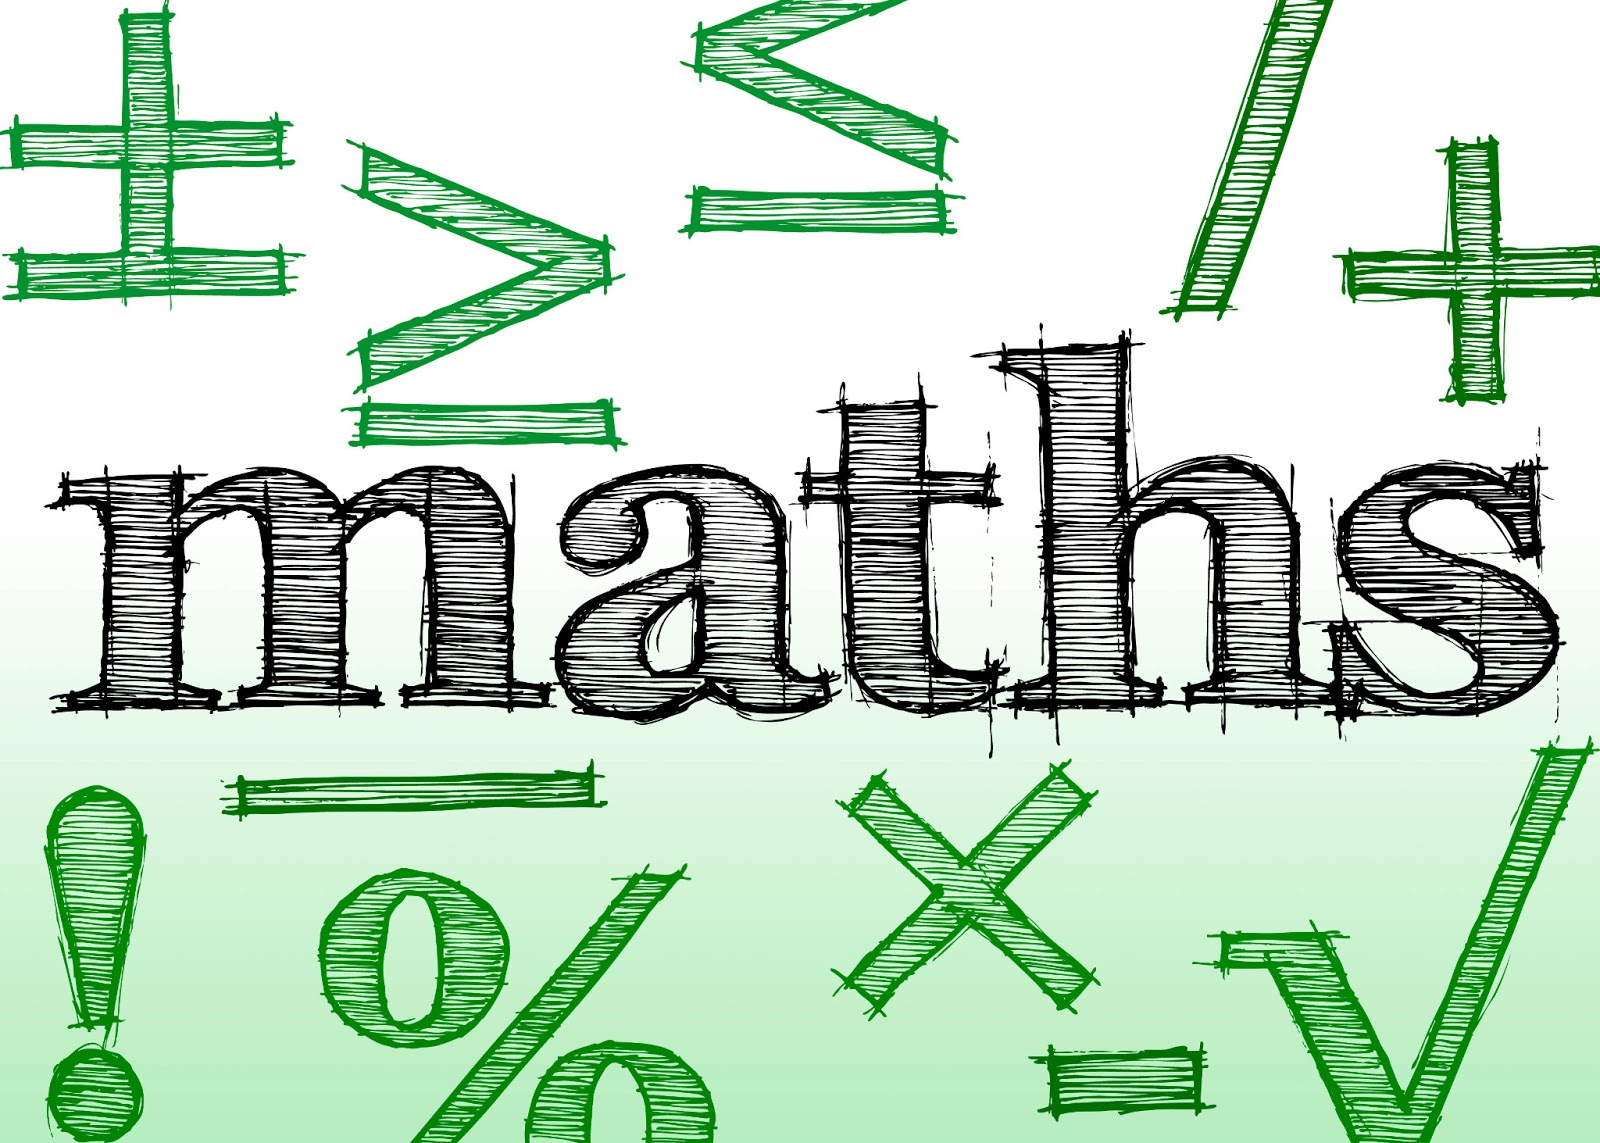 college math subjects free writing sites